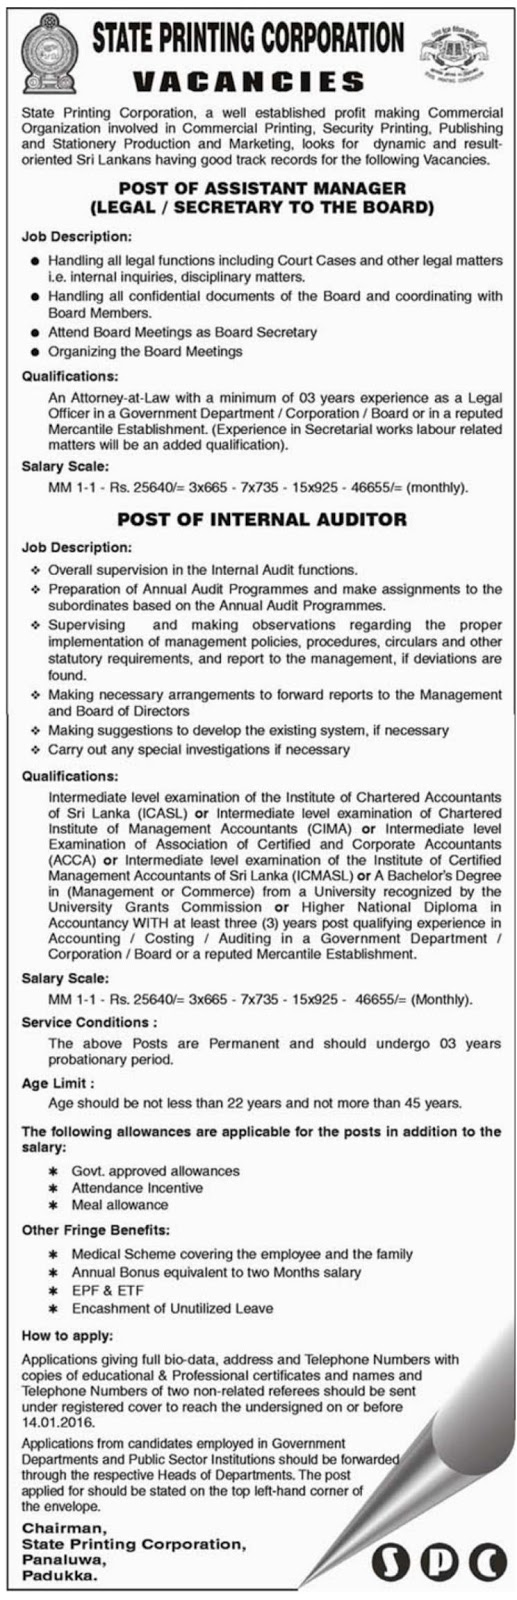 spc assistant manager internal auditor